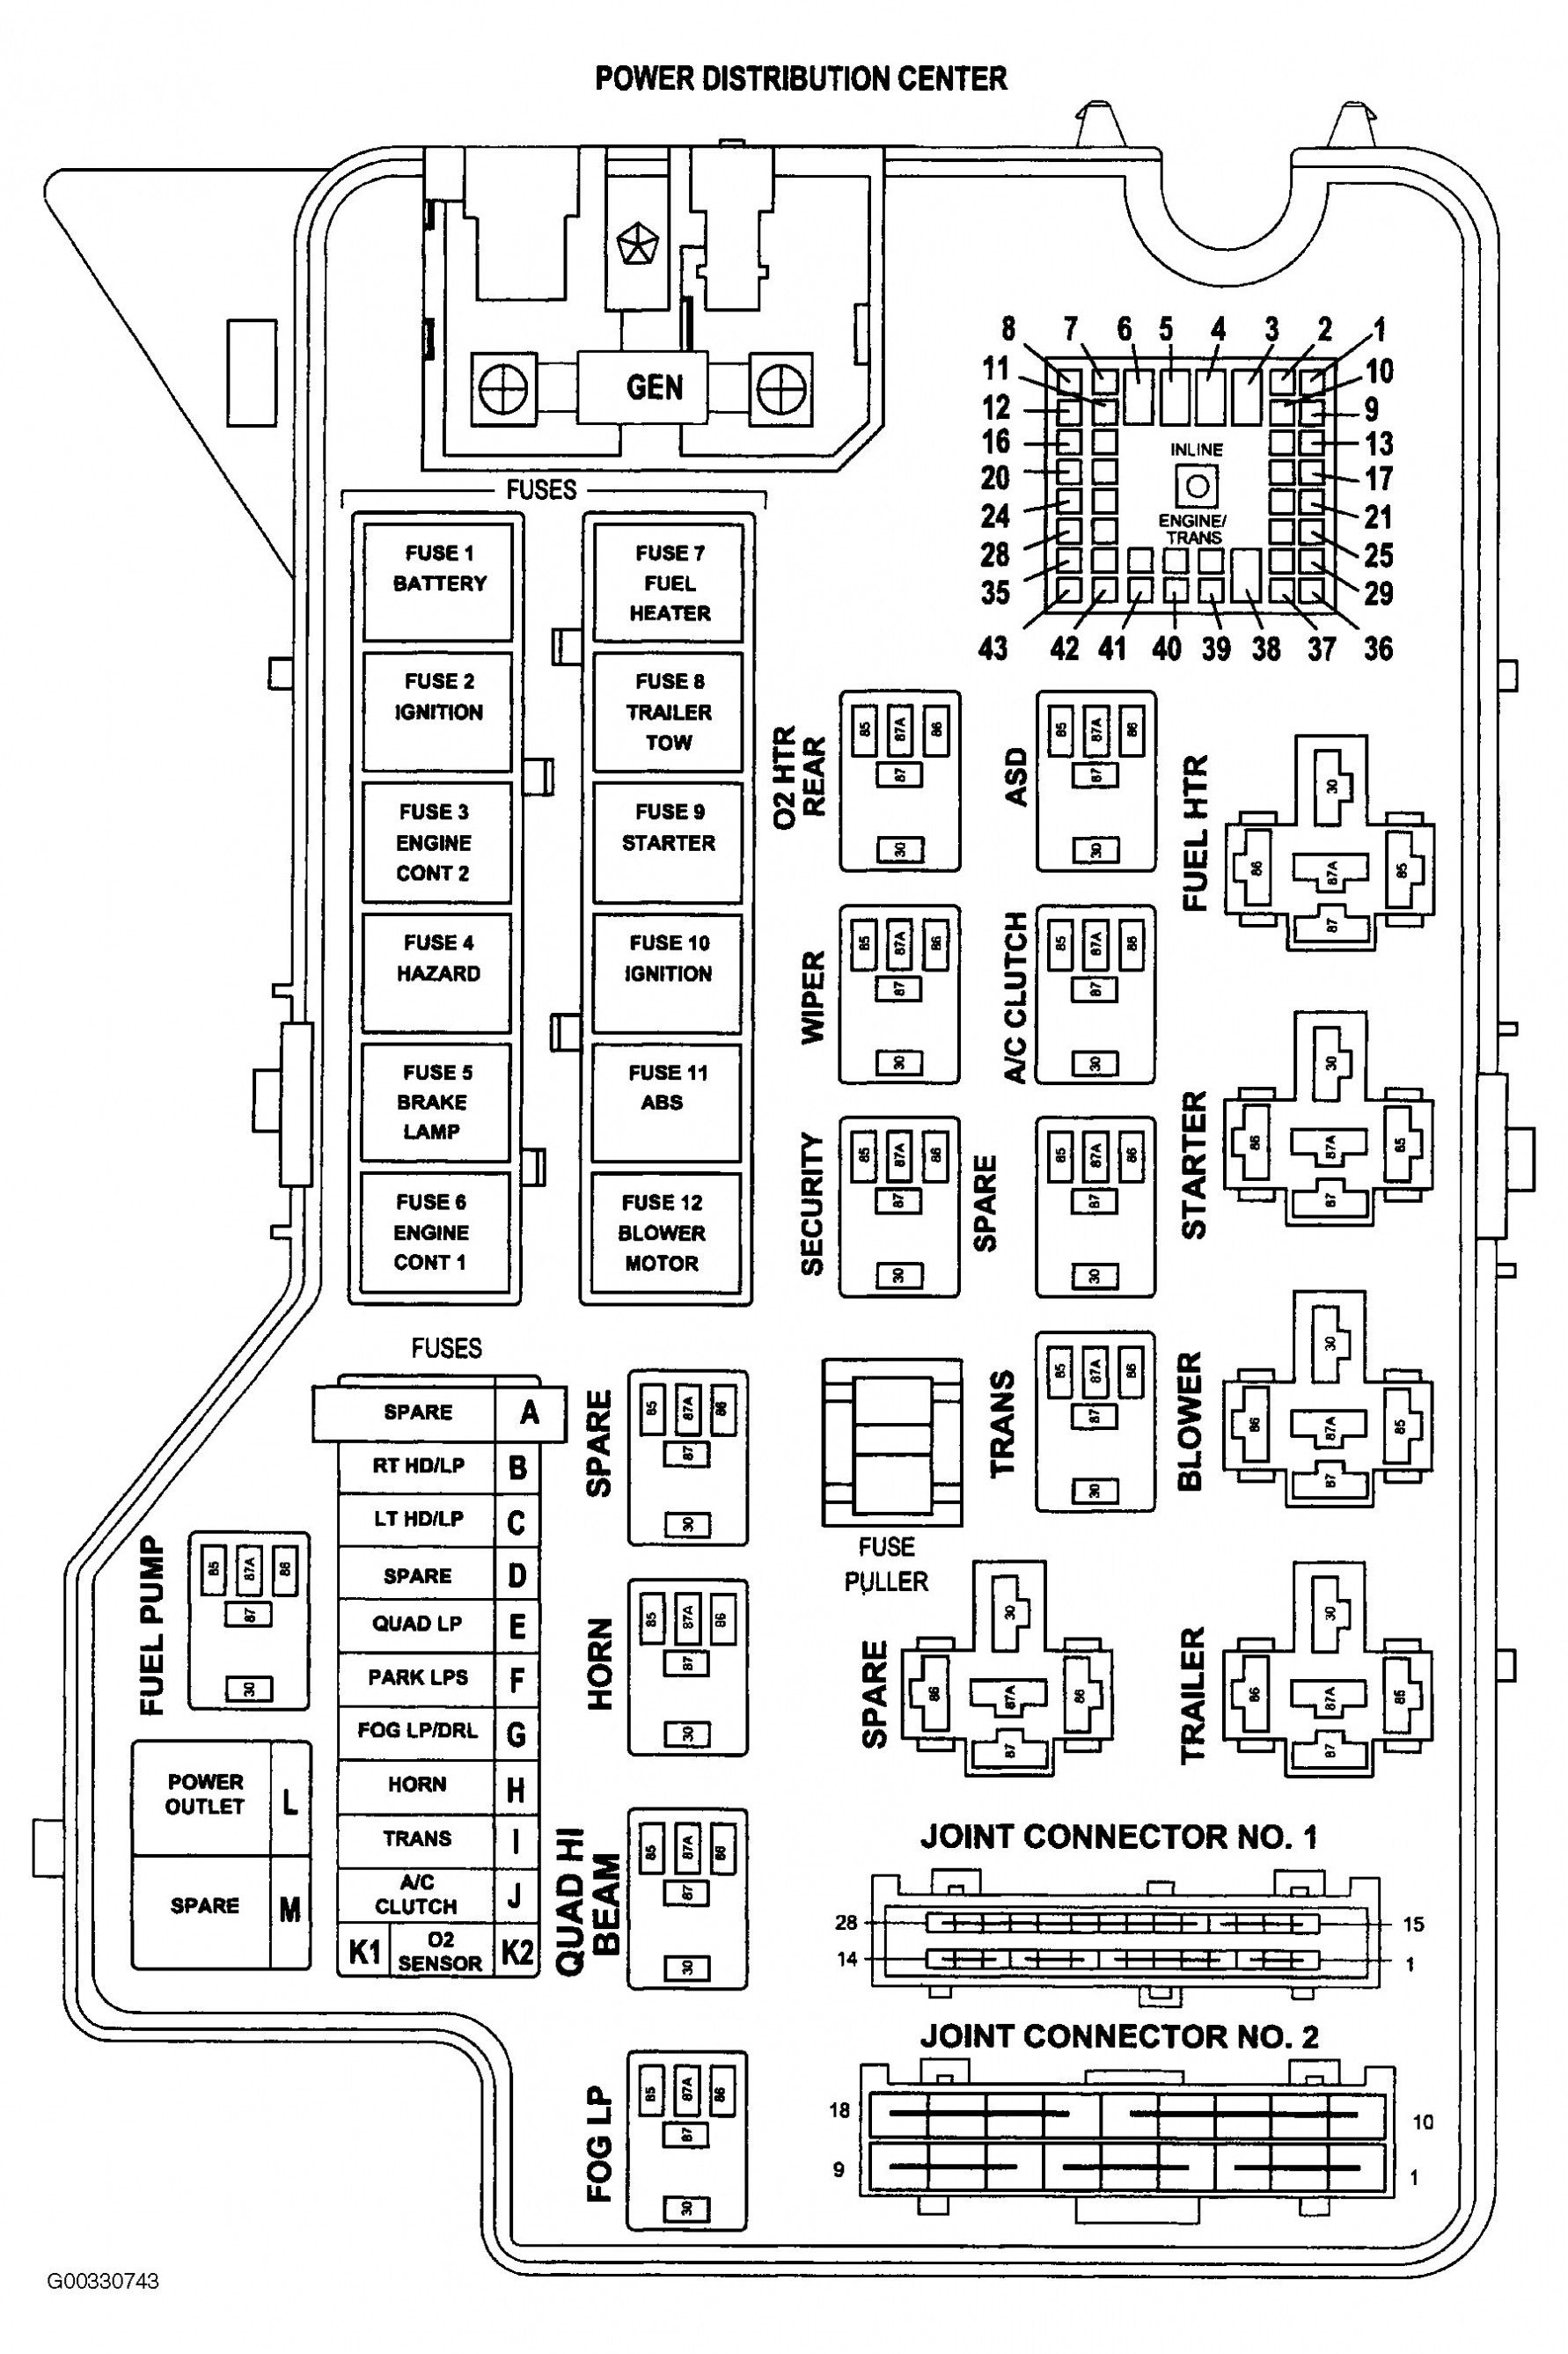 New 2004 Dodge Ram 1500 Ignition Wiring Diagram Diagram Diagramsample Diagramtemplate Wiringdiagram Diagramchart Dodge Ram 1500 Dodge Trucks Ram Ram 1500